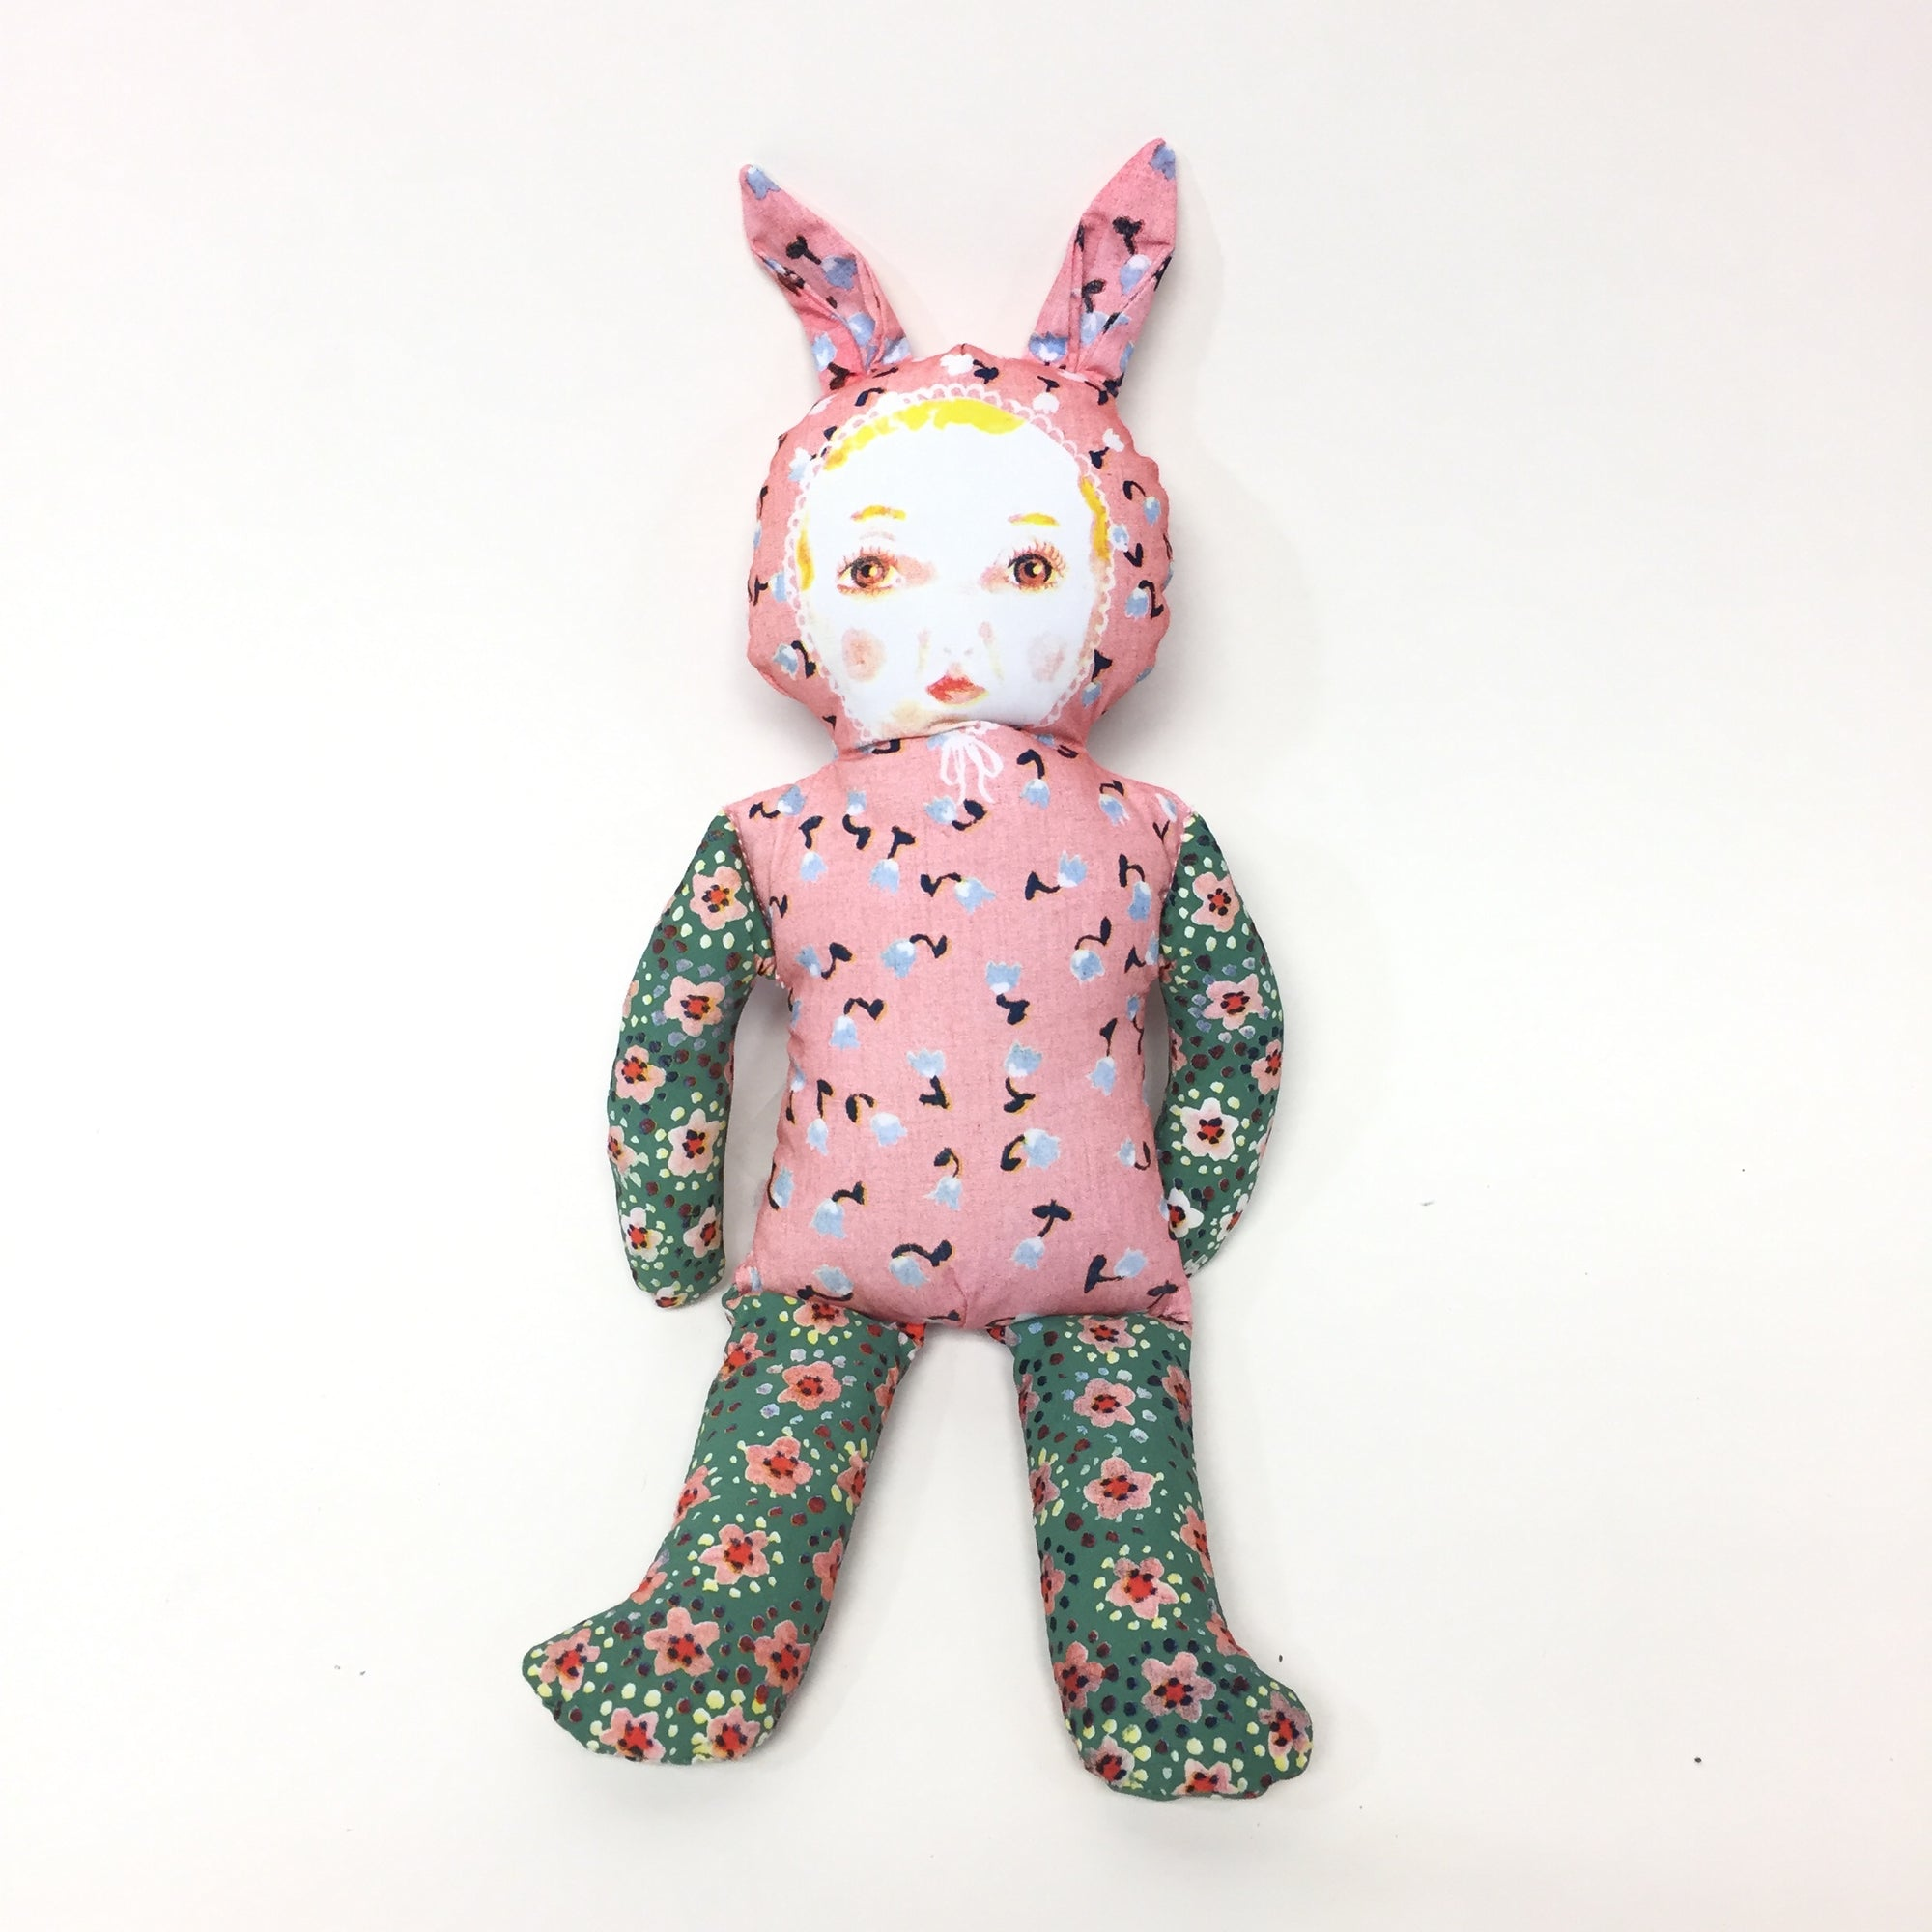 Pink Bunny Doll by Nathalie Lete